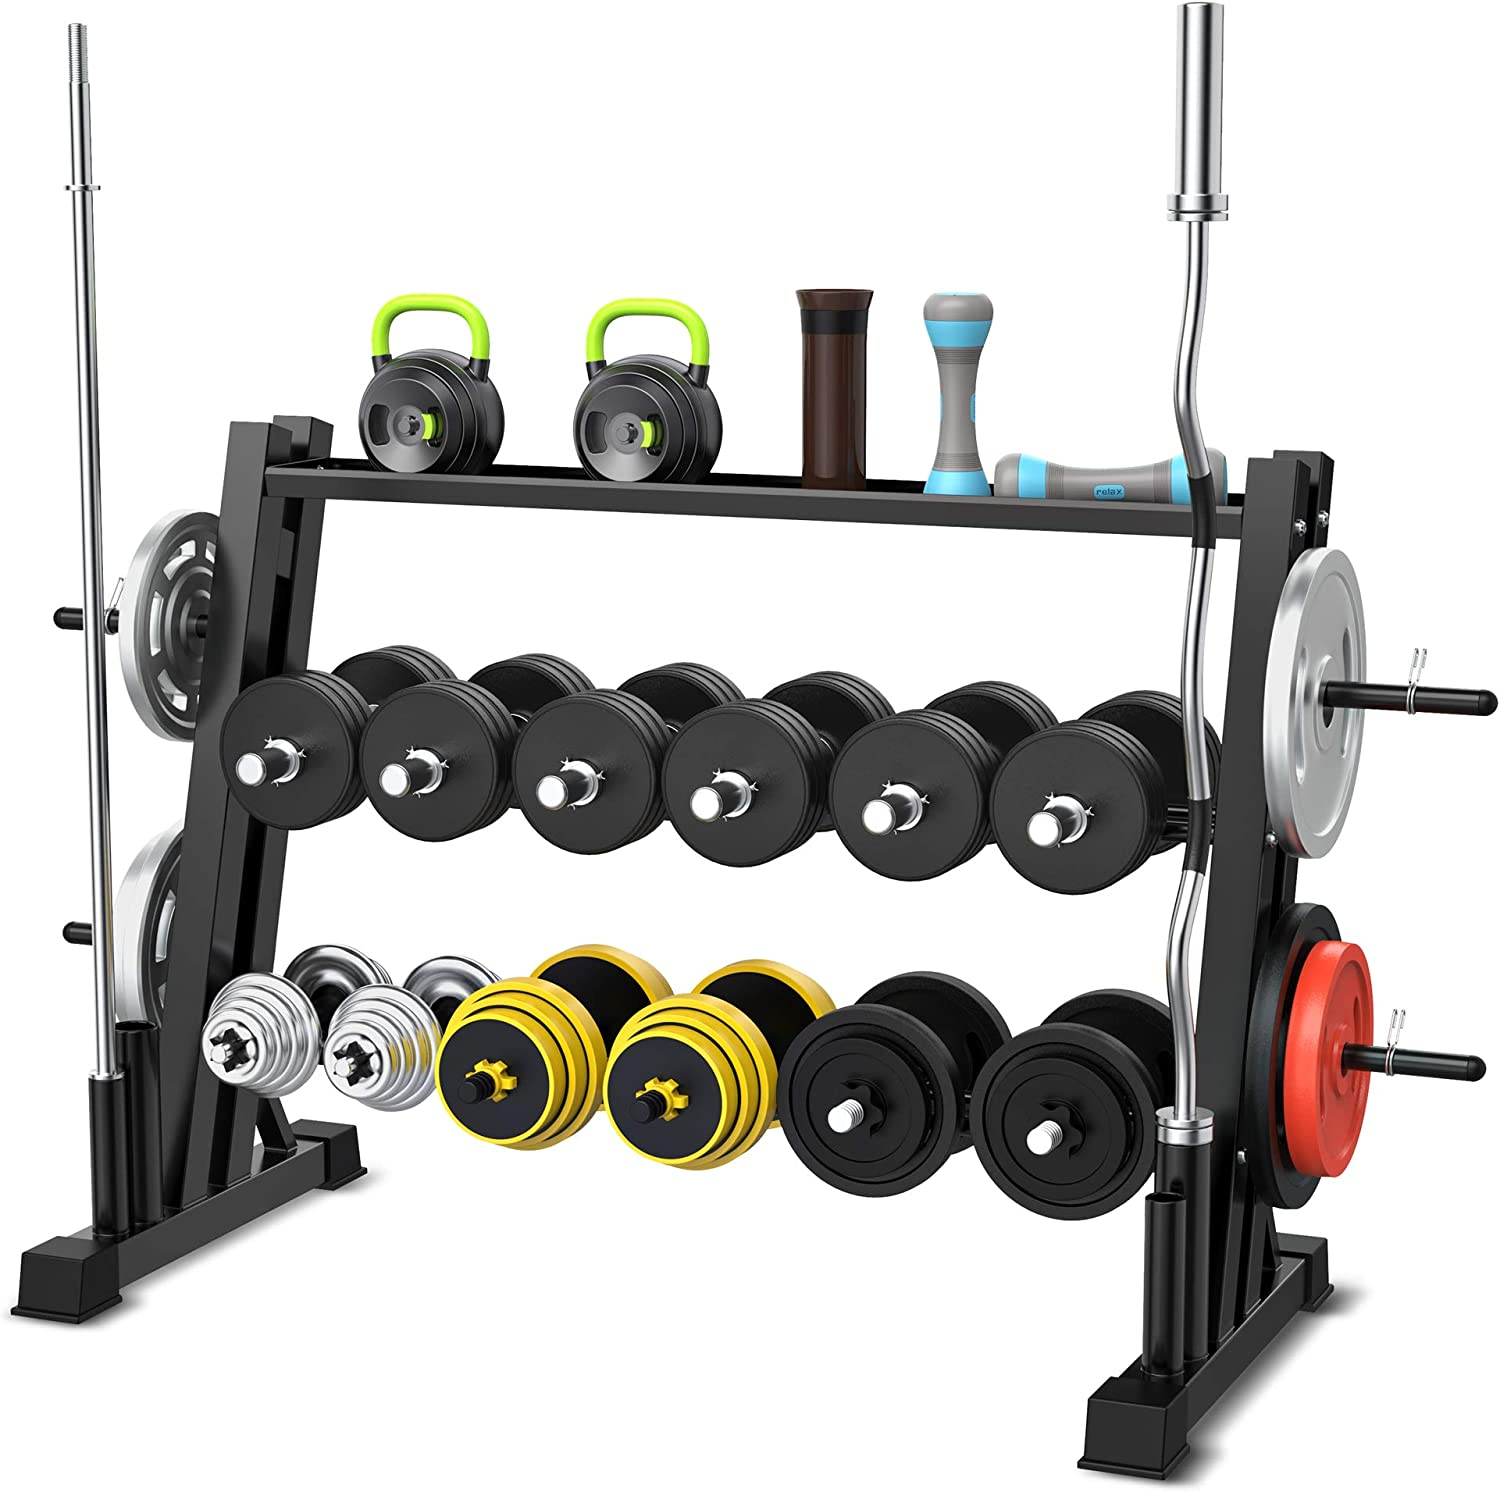 3 Tier Dumbbell Rack for Home Gym, Dual Vertical Bar Rack All in One Dumbbell Rack Athletic Supply Set Storage Rack Holds Up to 1322 LB for Home Workout Gym Storage Stand - Black